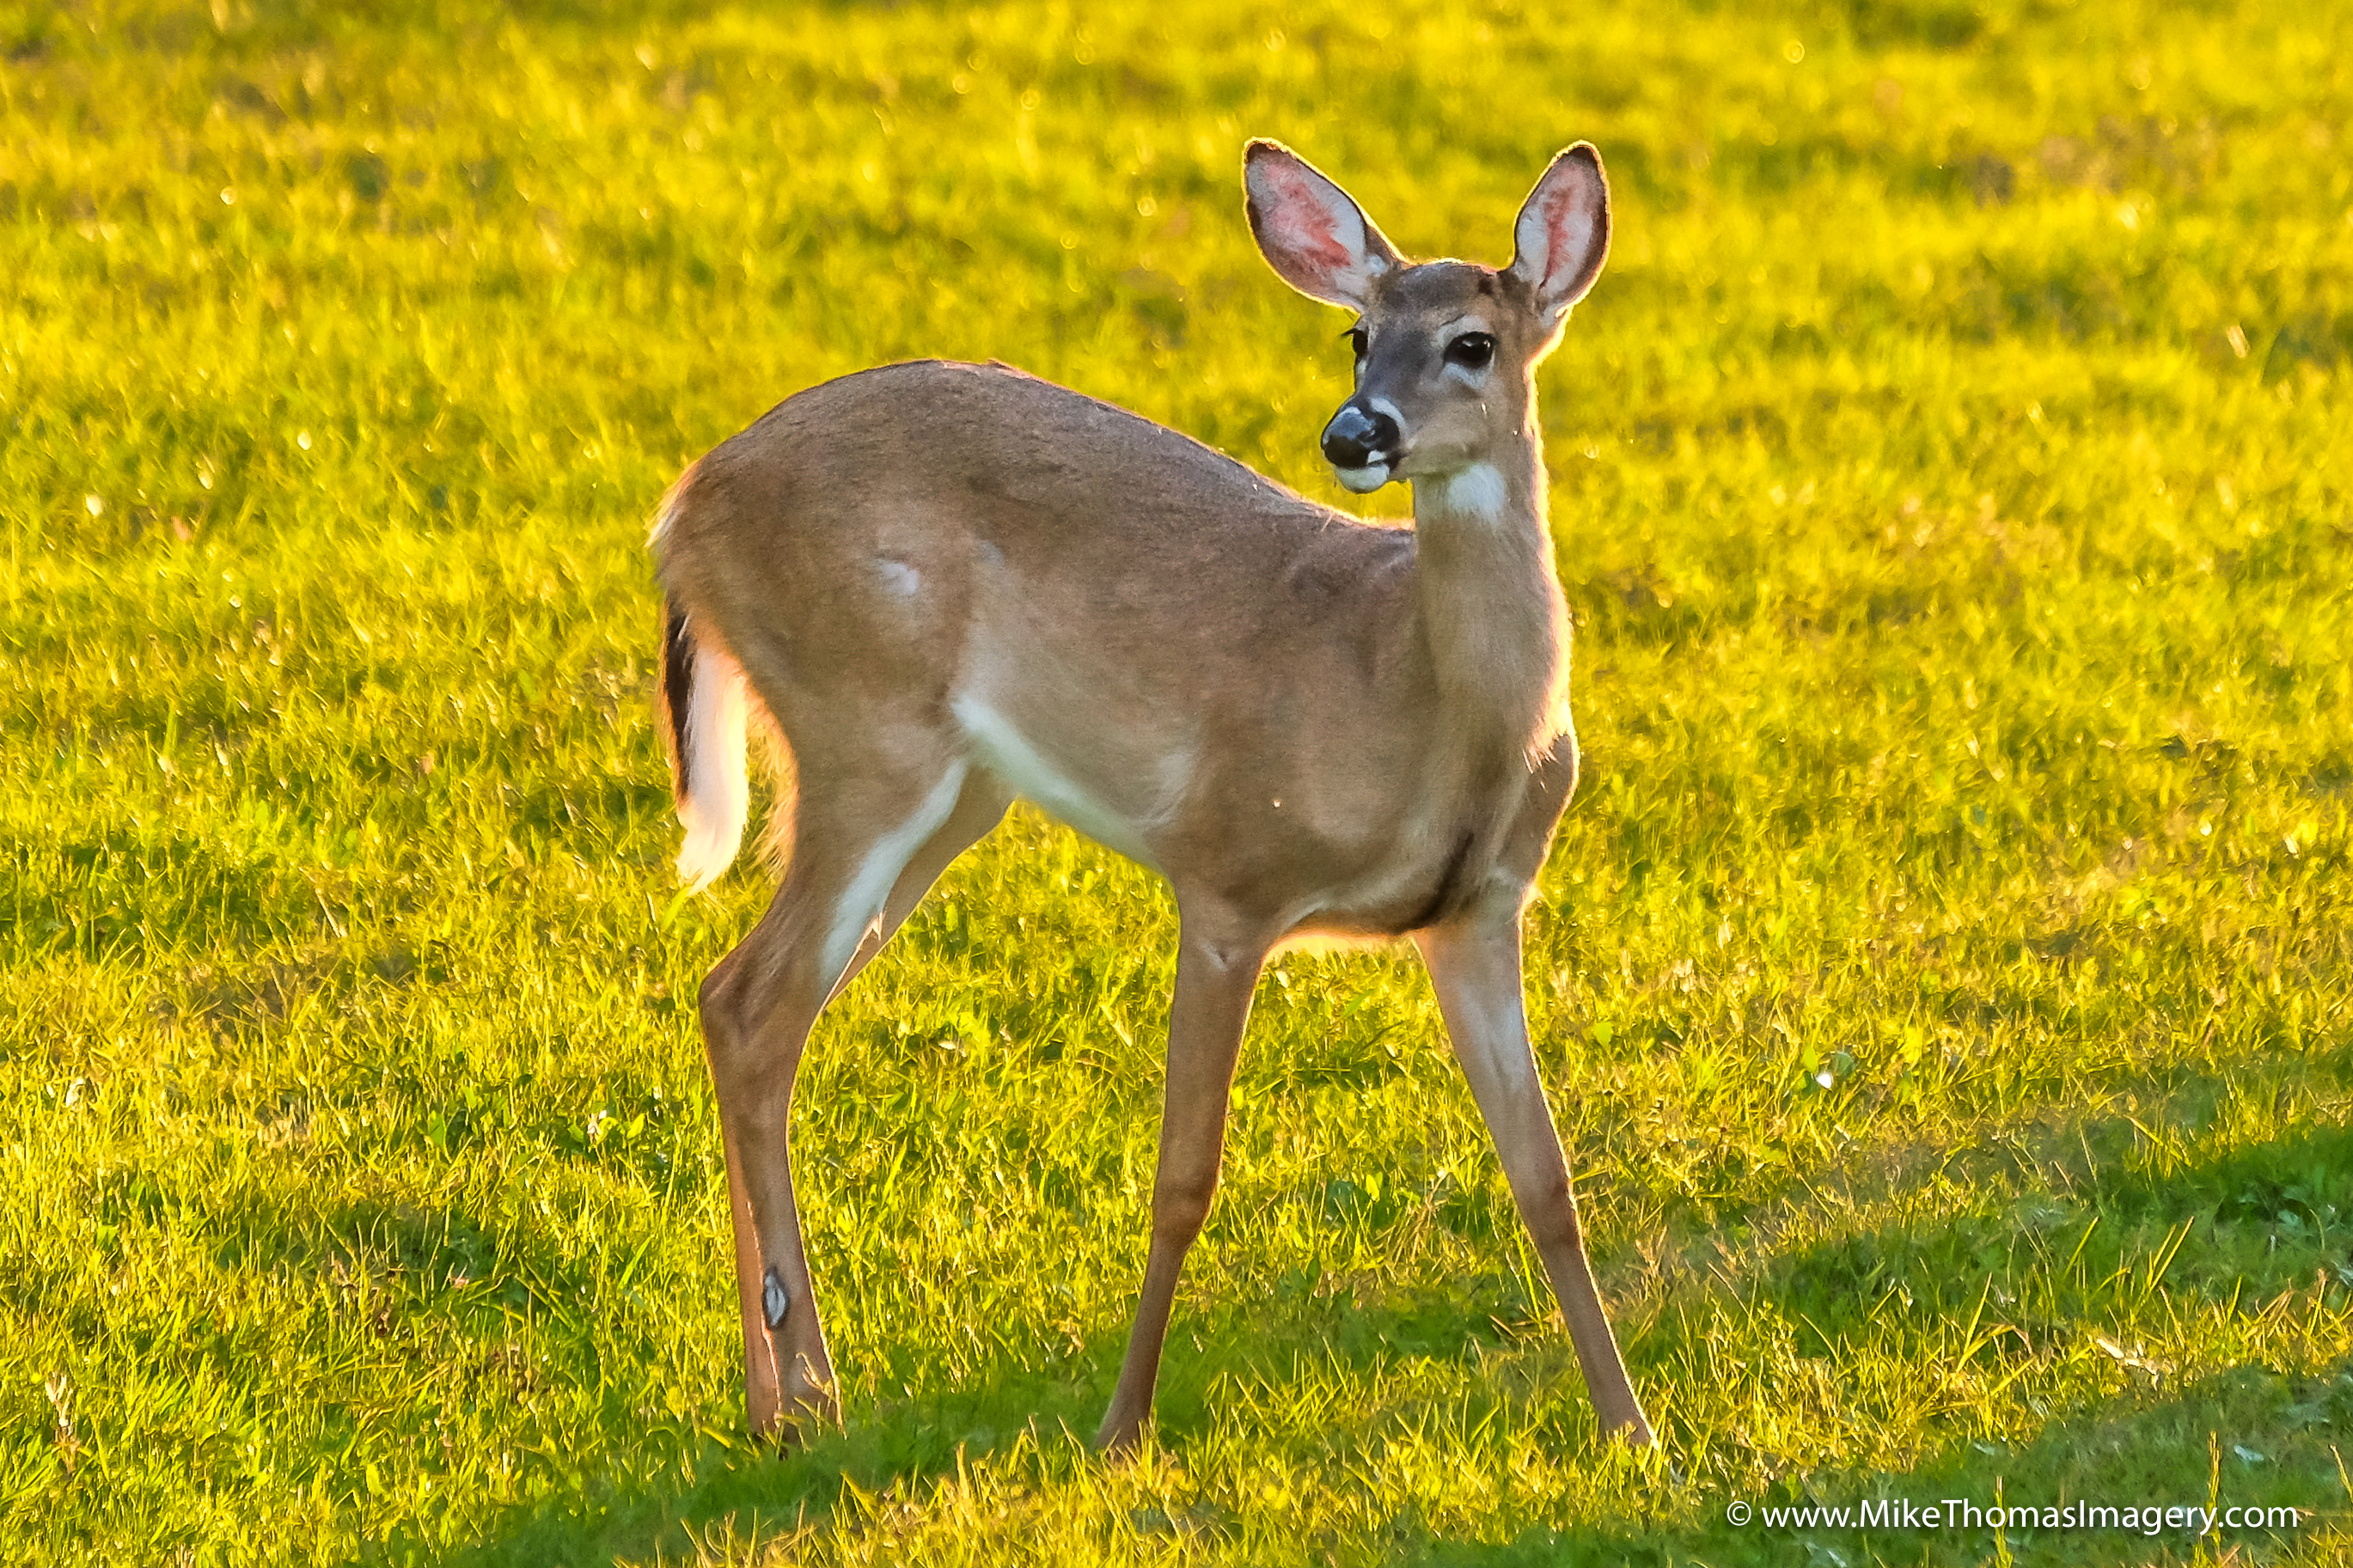 deer, bambi, wildlife, herd, disney, fort wilderness, nature